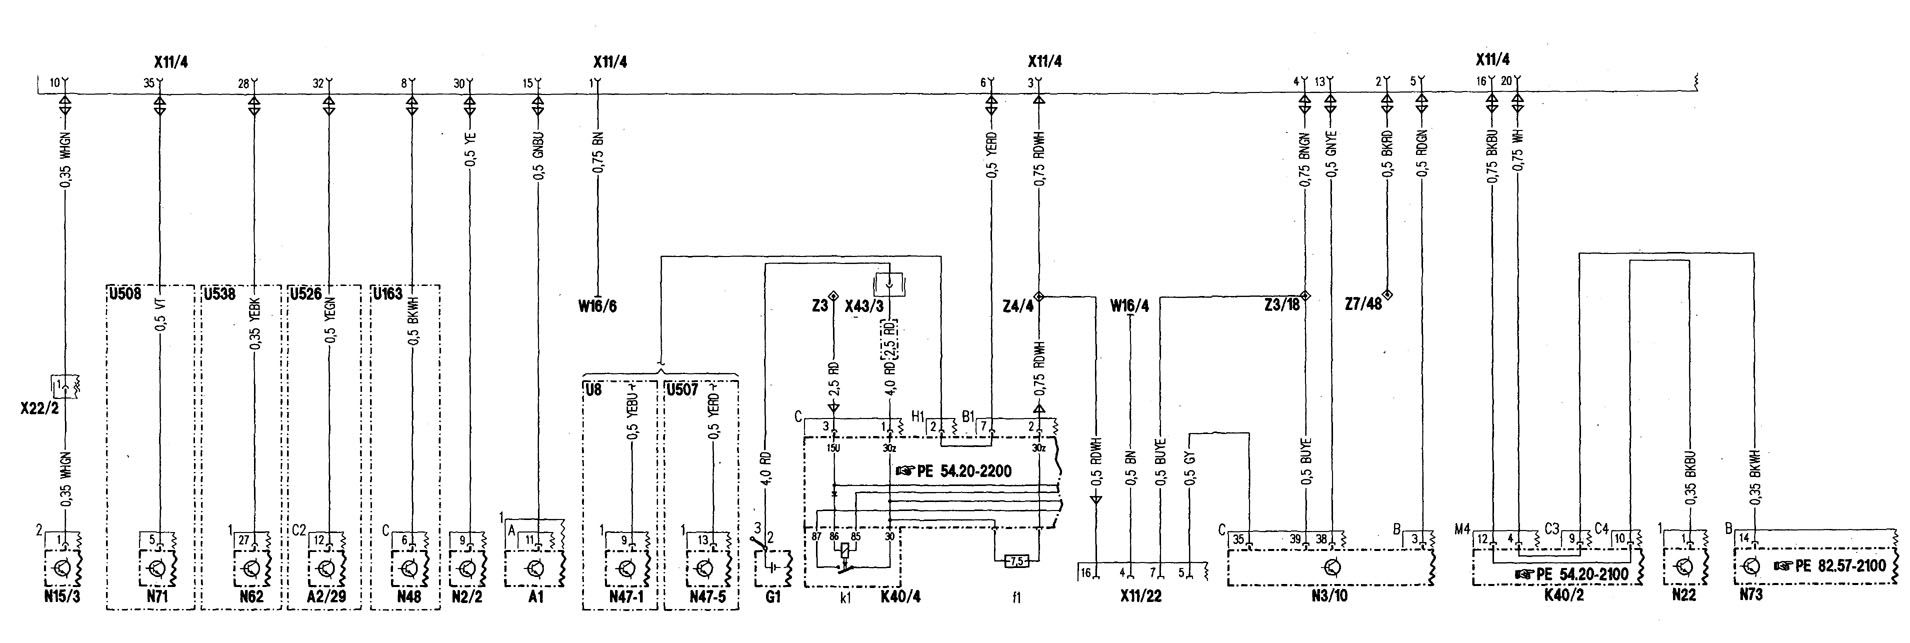 Mercedes Benz C280 1998 Wiring Diagrams Computer Data Lines Engine Diagram